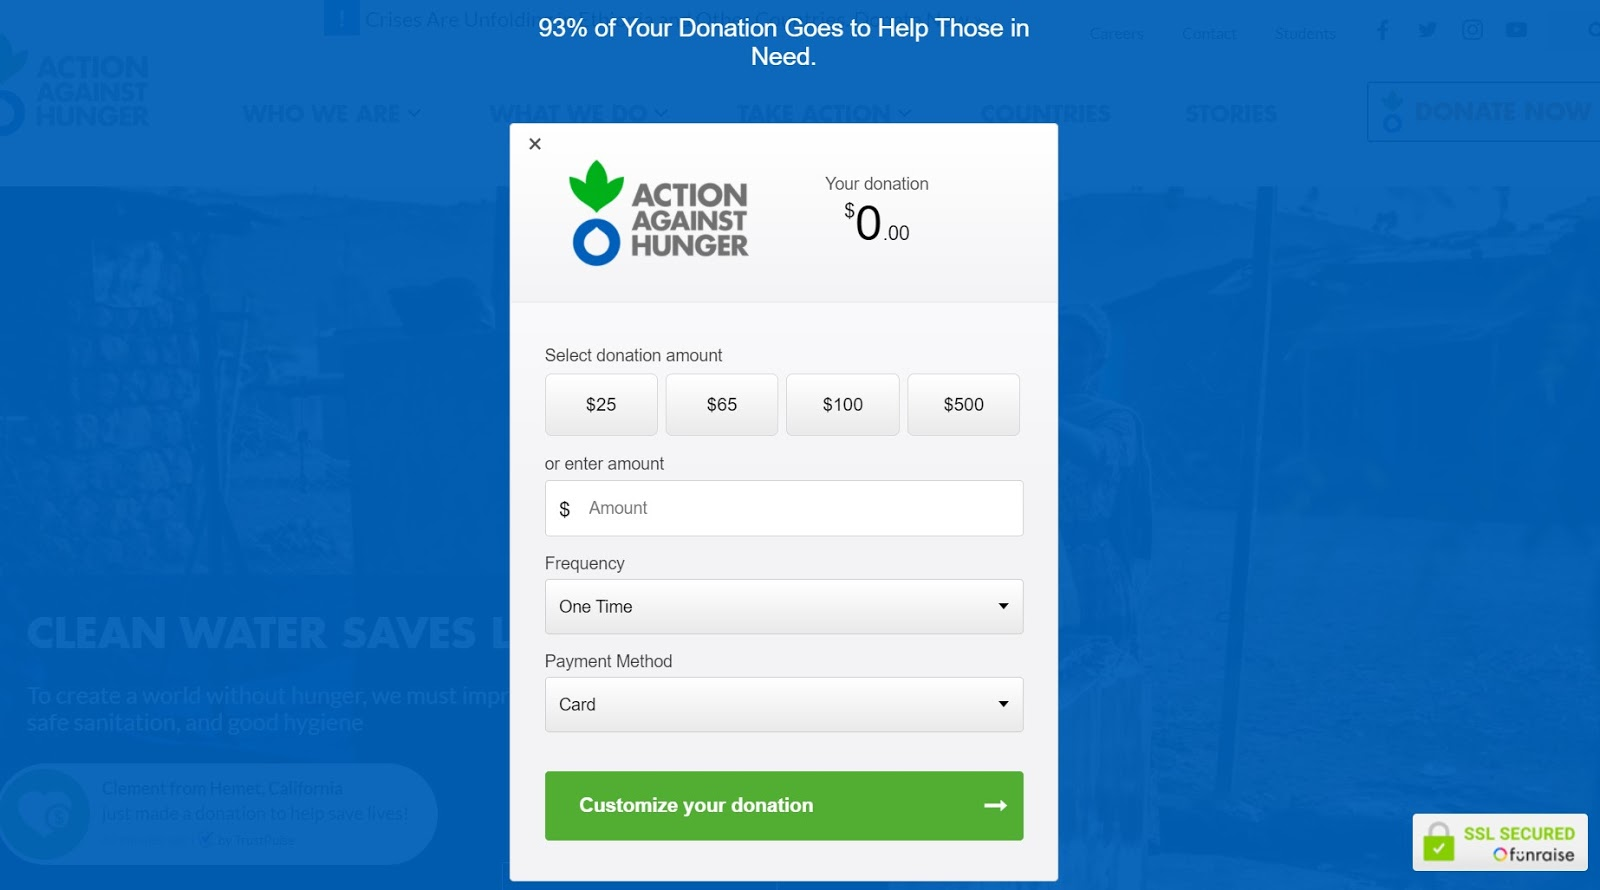 Action Against Hunger's donation form on a blue background.